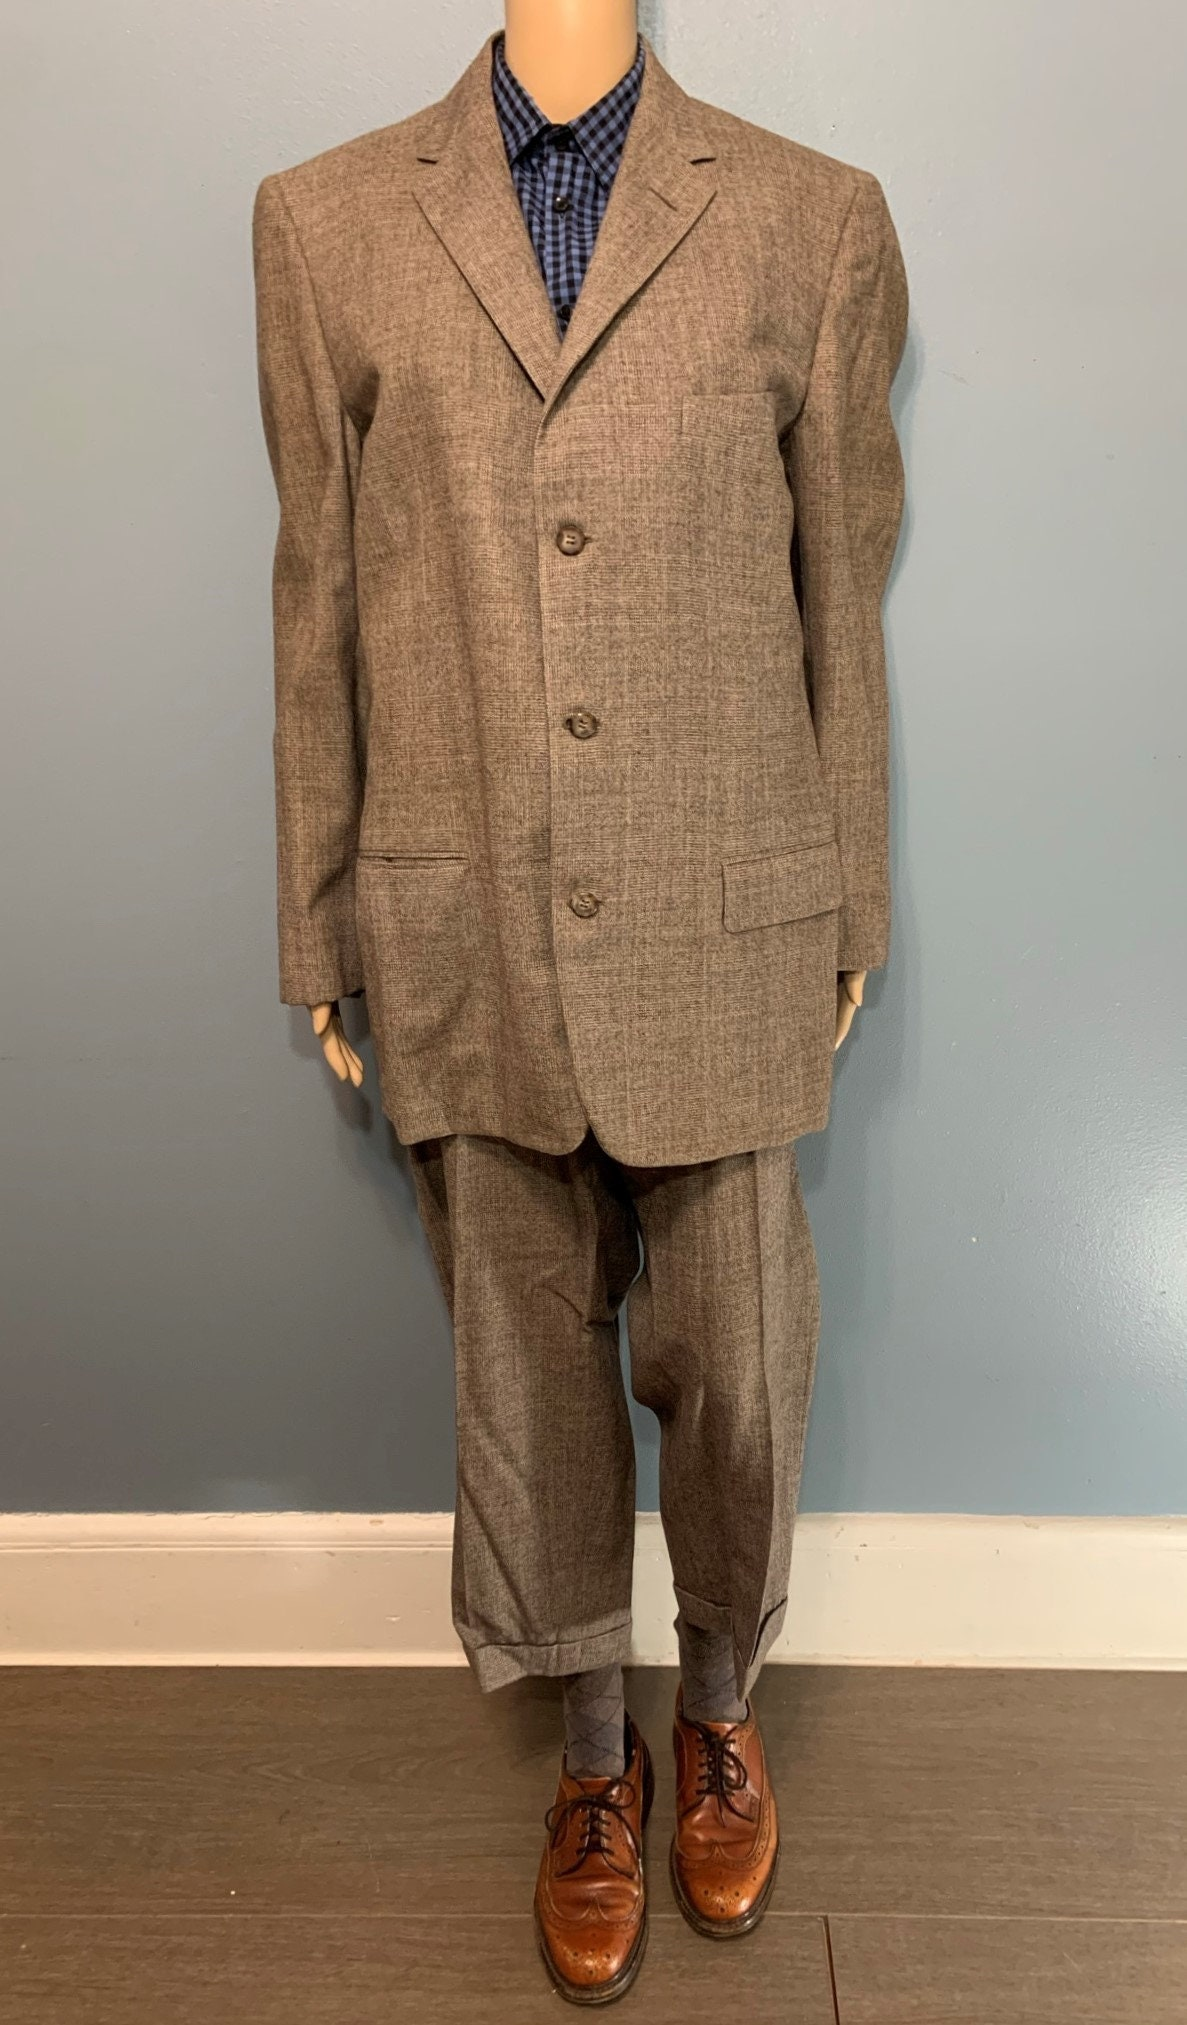 1950s Mens Suits & Sport Coats   50s Suits & Blazers Vintage 1940S-1950S Eagle Clothes Brown Suit Sportscoat  High-Waisted Pleated Trousers Tailored For Sam Soloman Hackensack, Nj, Usa $318.75 AT vintagedancer.com